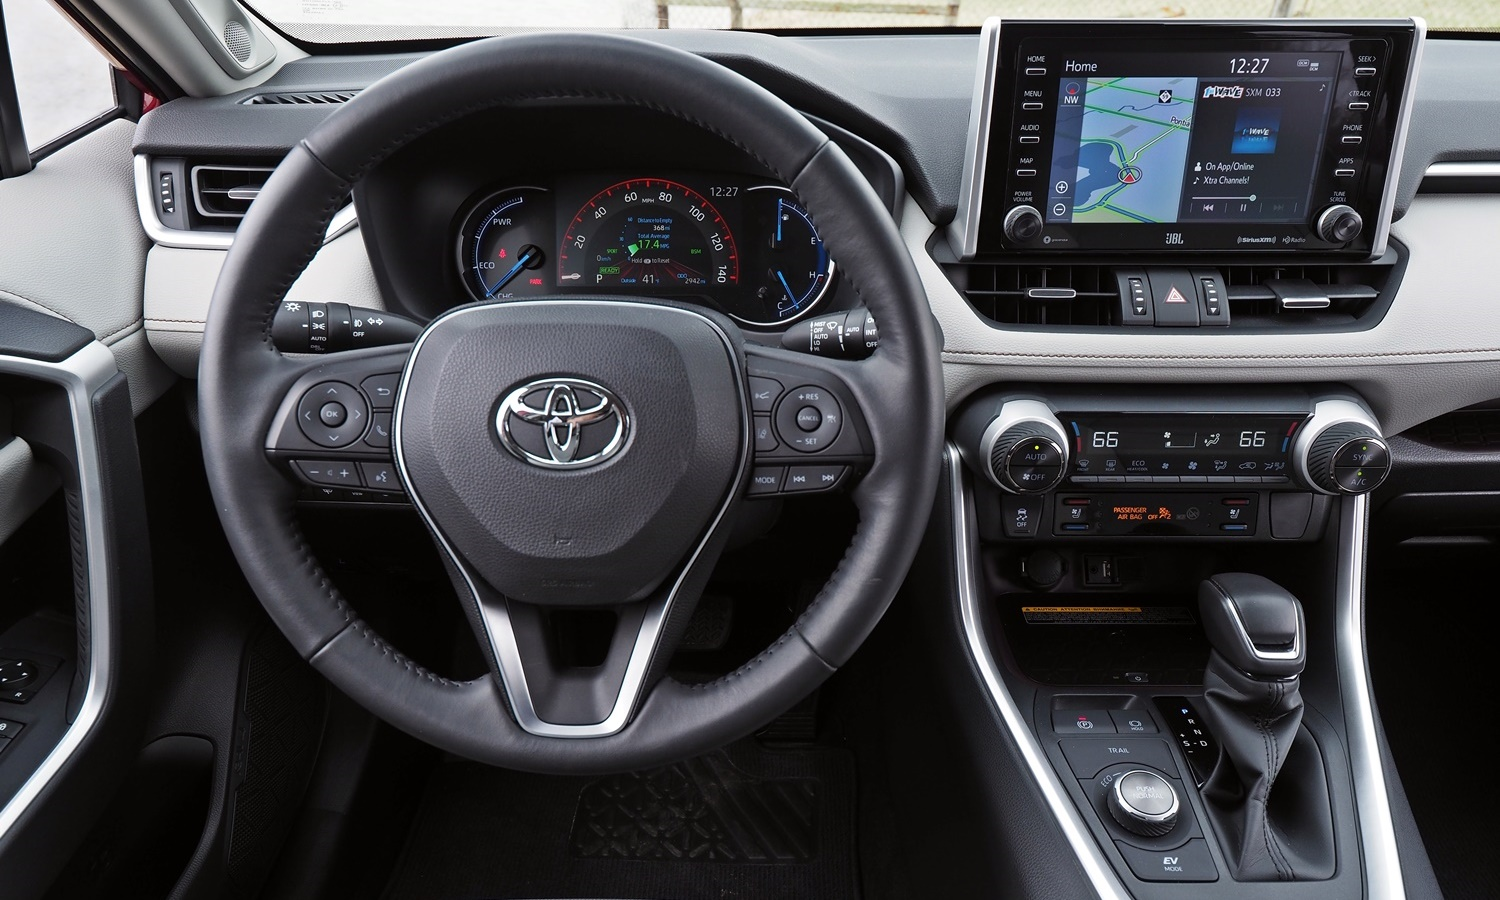 RAV4 Reviews: 2019 Toyota RAV4 instrument panel